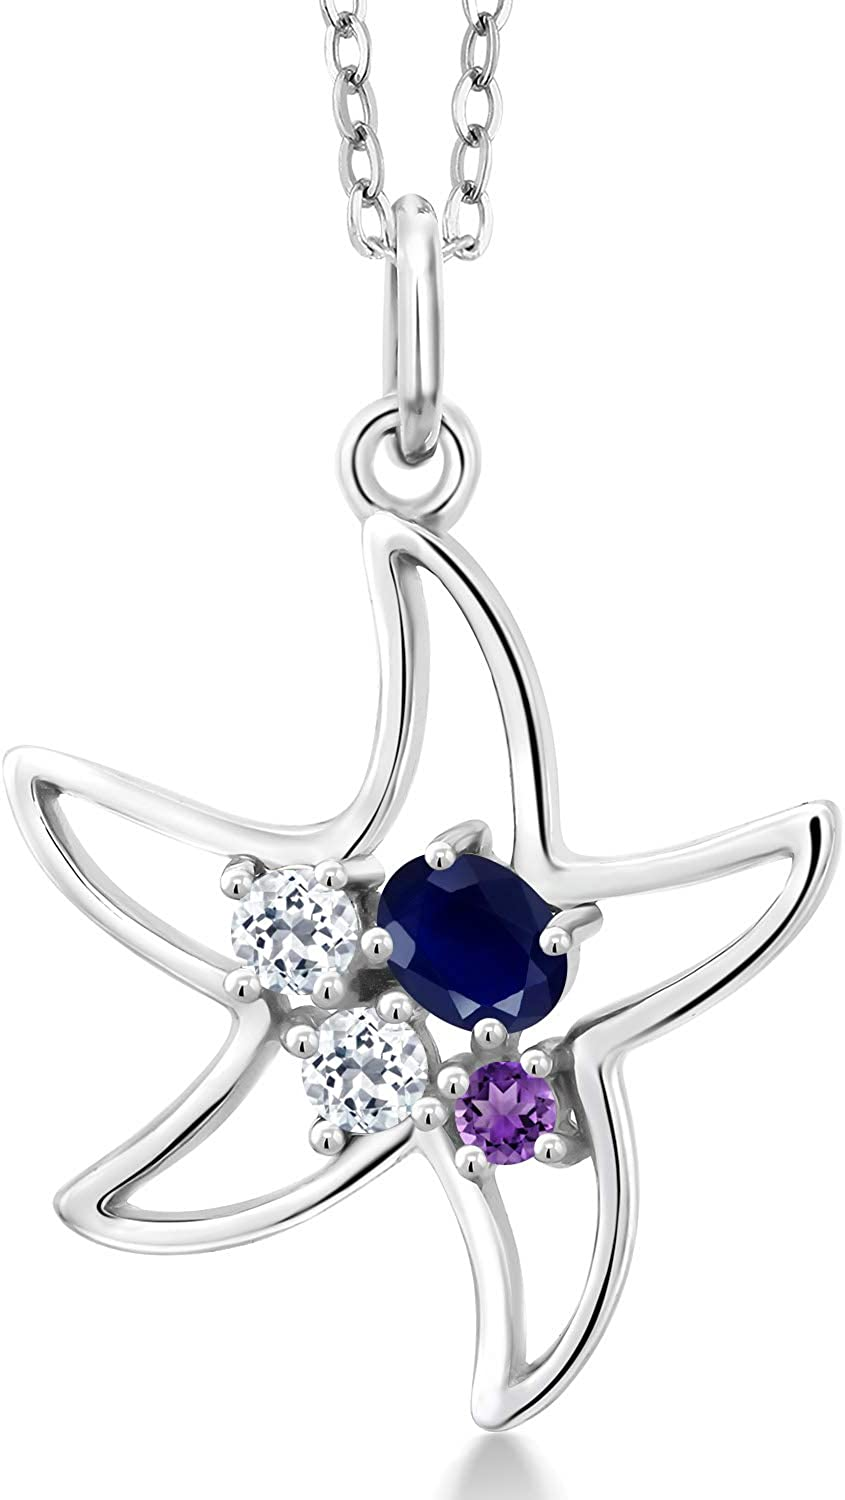 Gem Stone King Outstanding 925 Sterling Silver Max 65% OFF Sapphire and Blue Topaz White